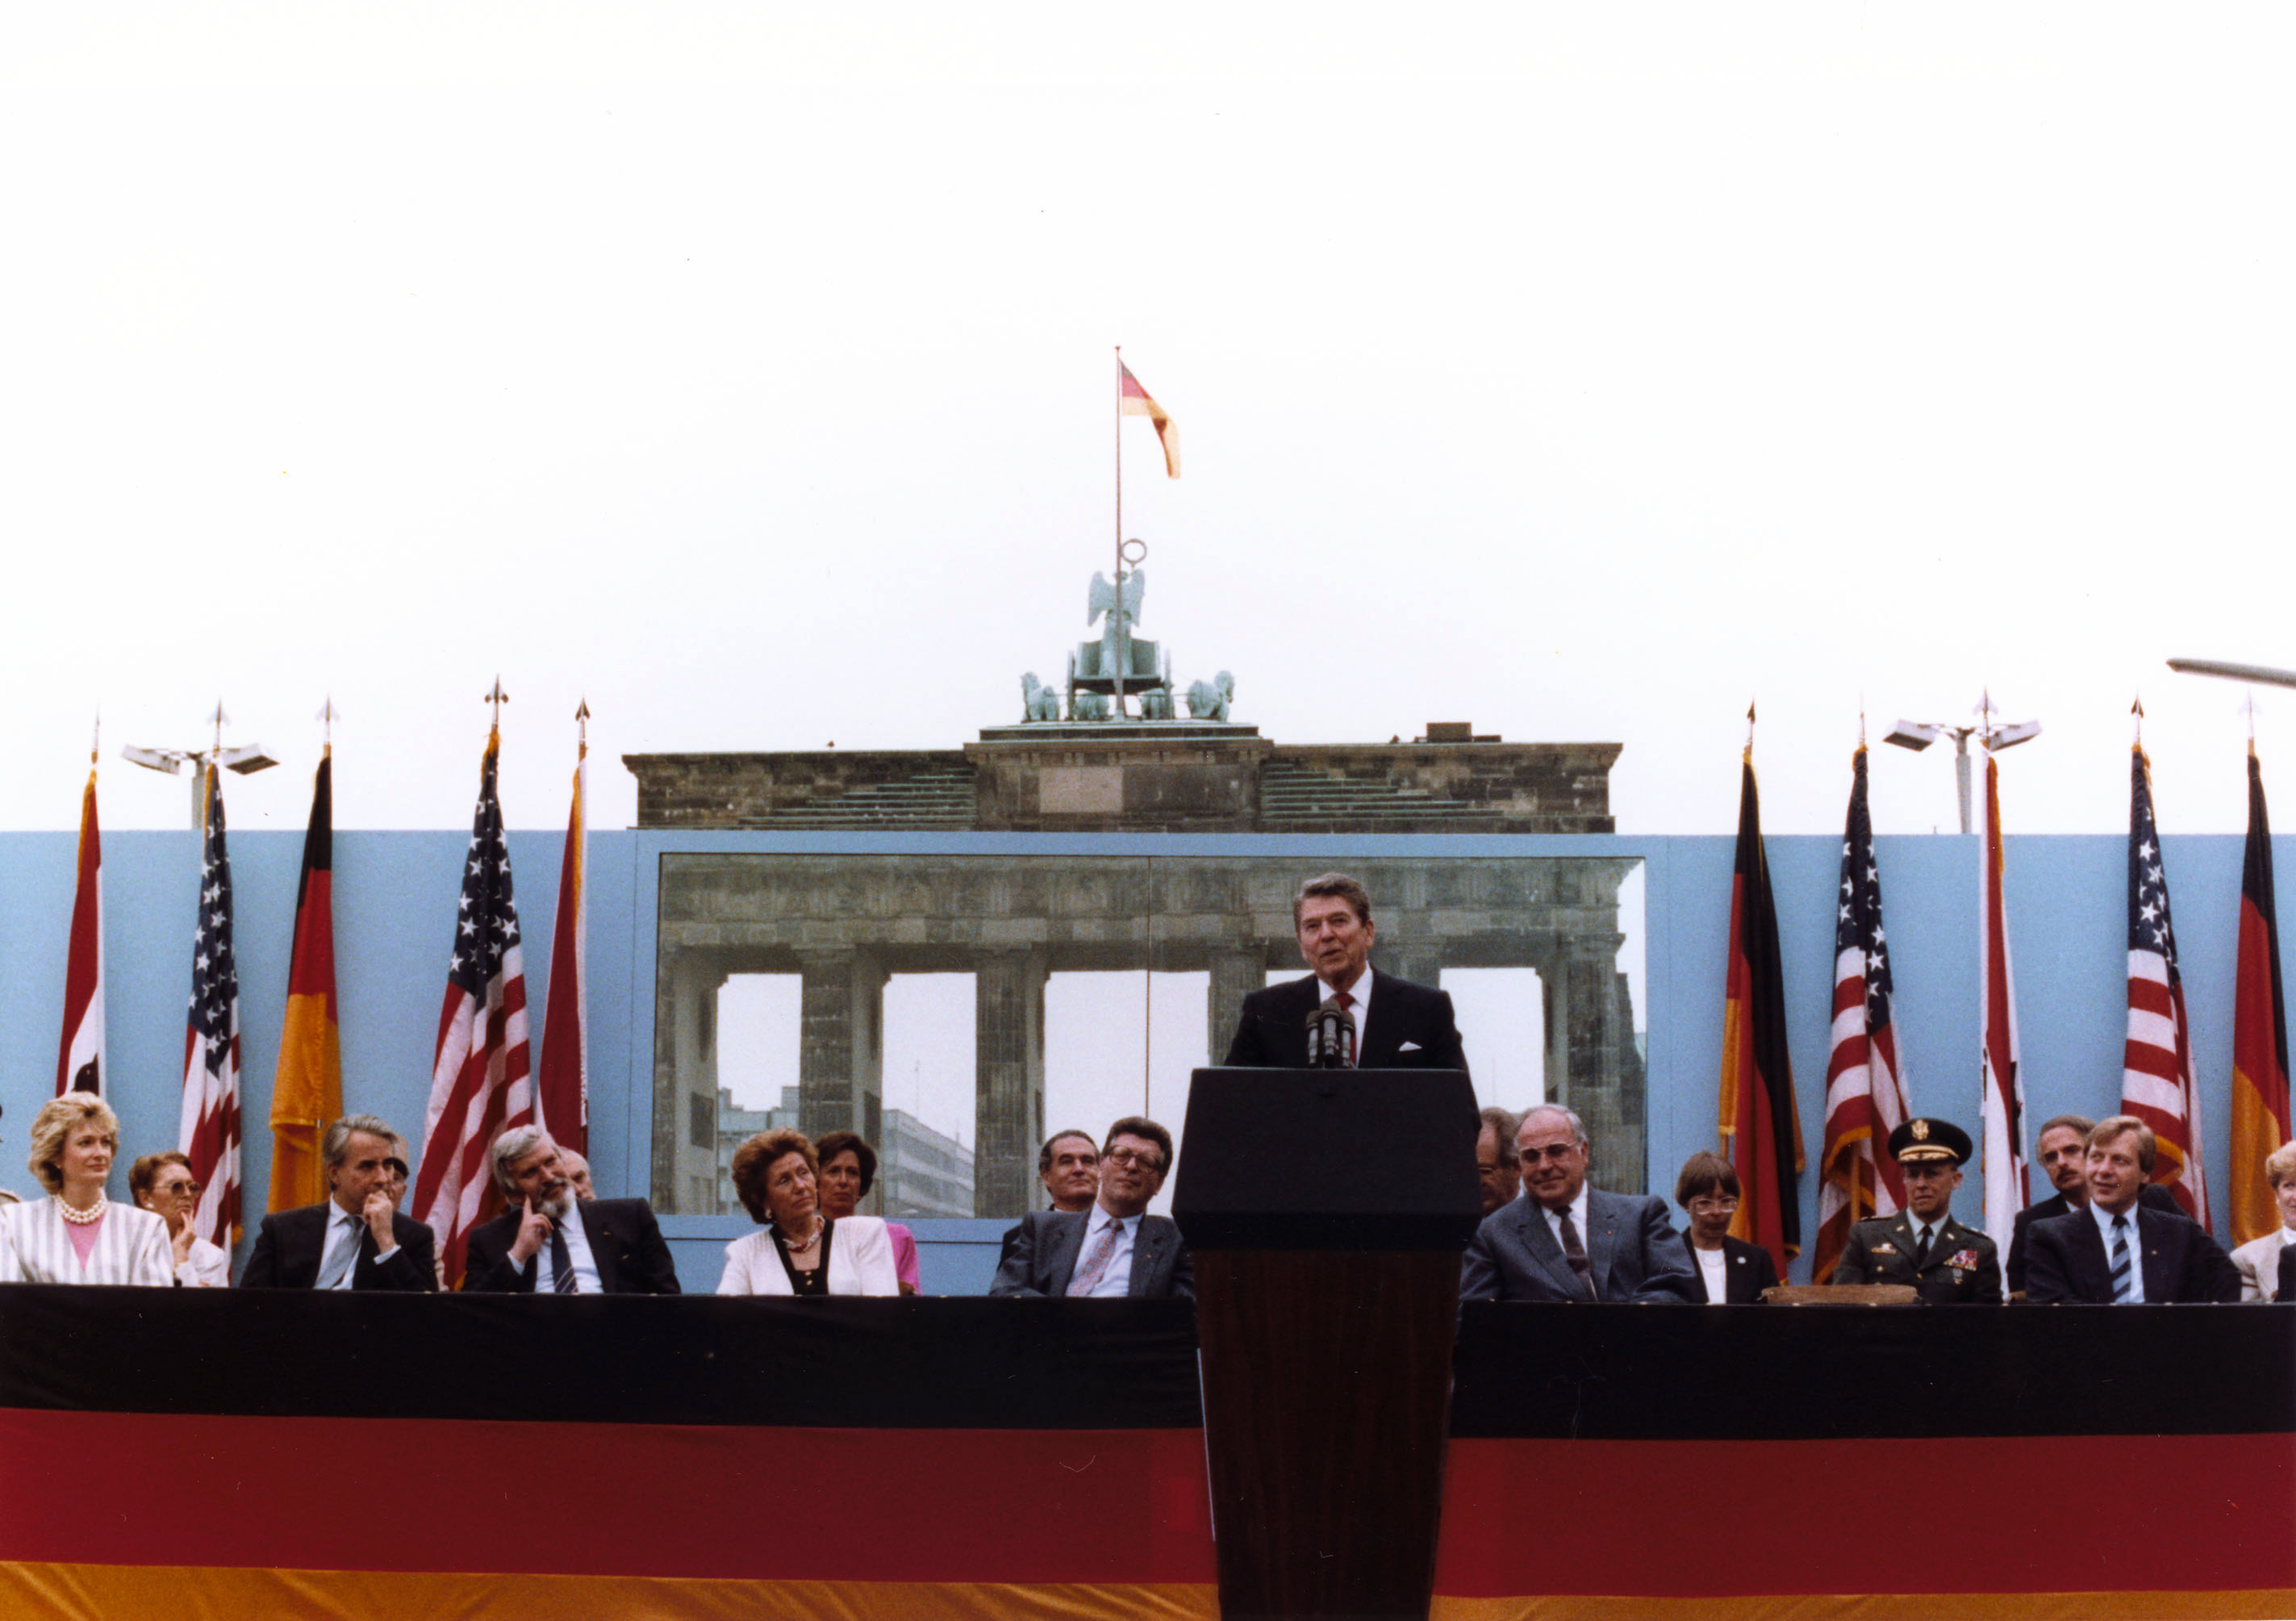 President Ronald Reagan speaking in front of the Brandenburg Gate and the Berlin Wall on June 12, 1987, challenging Gorbachev to